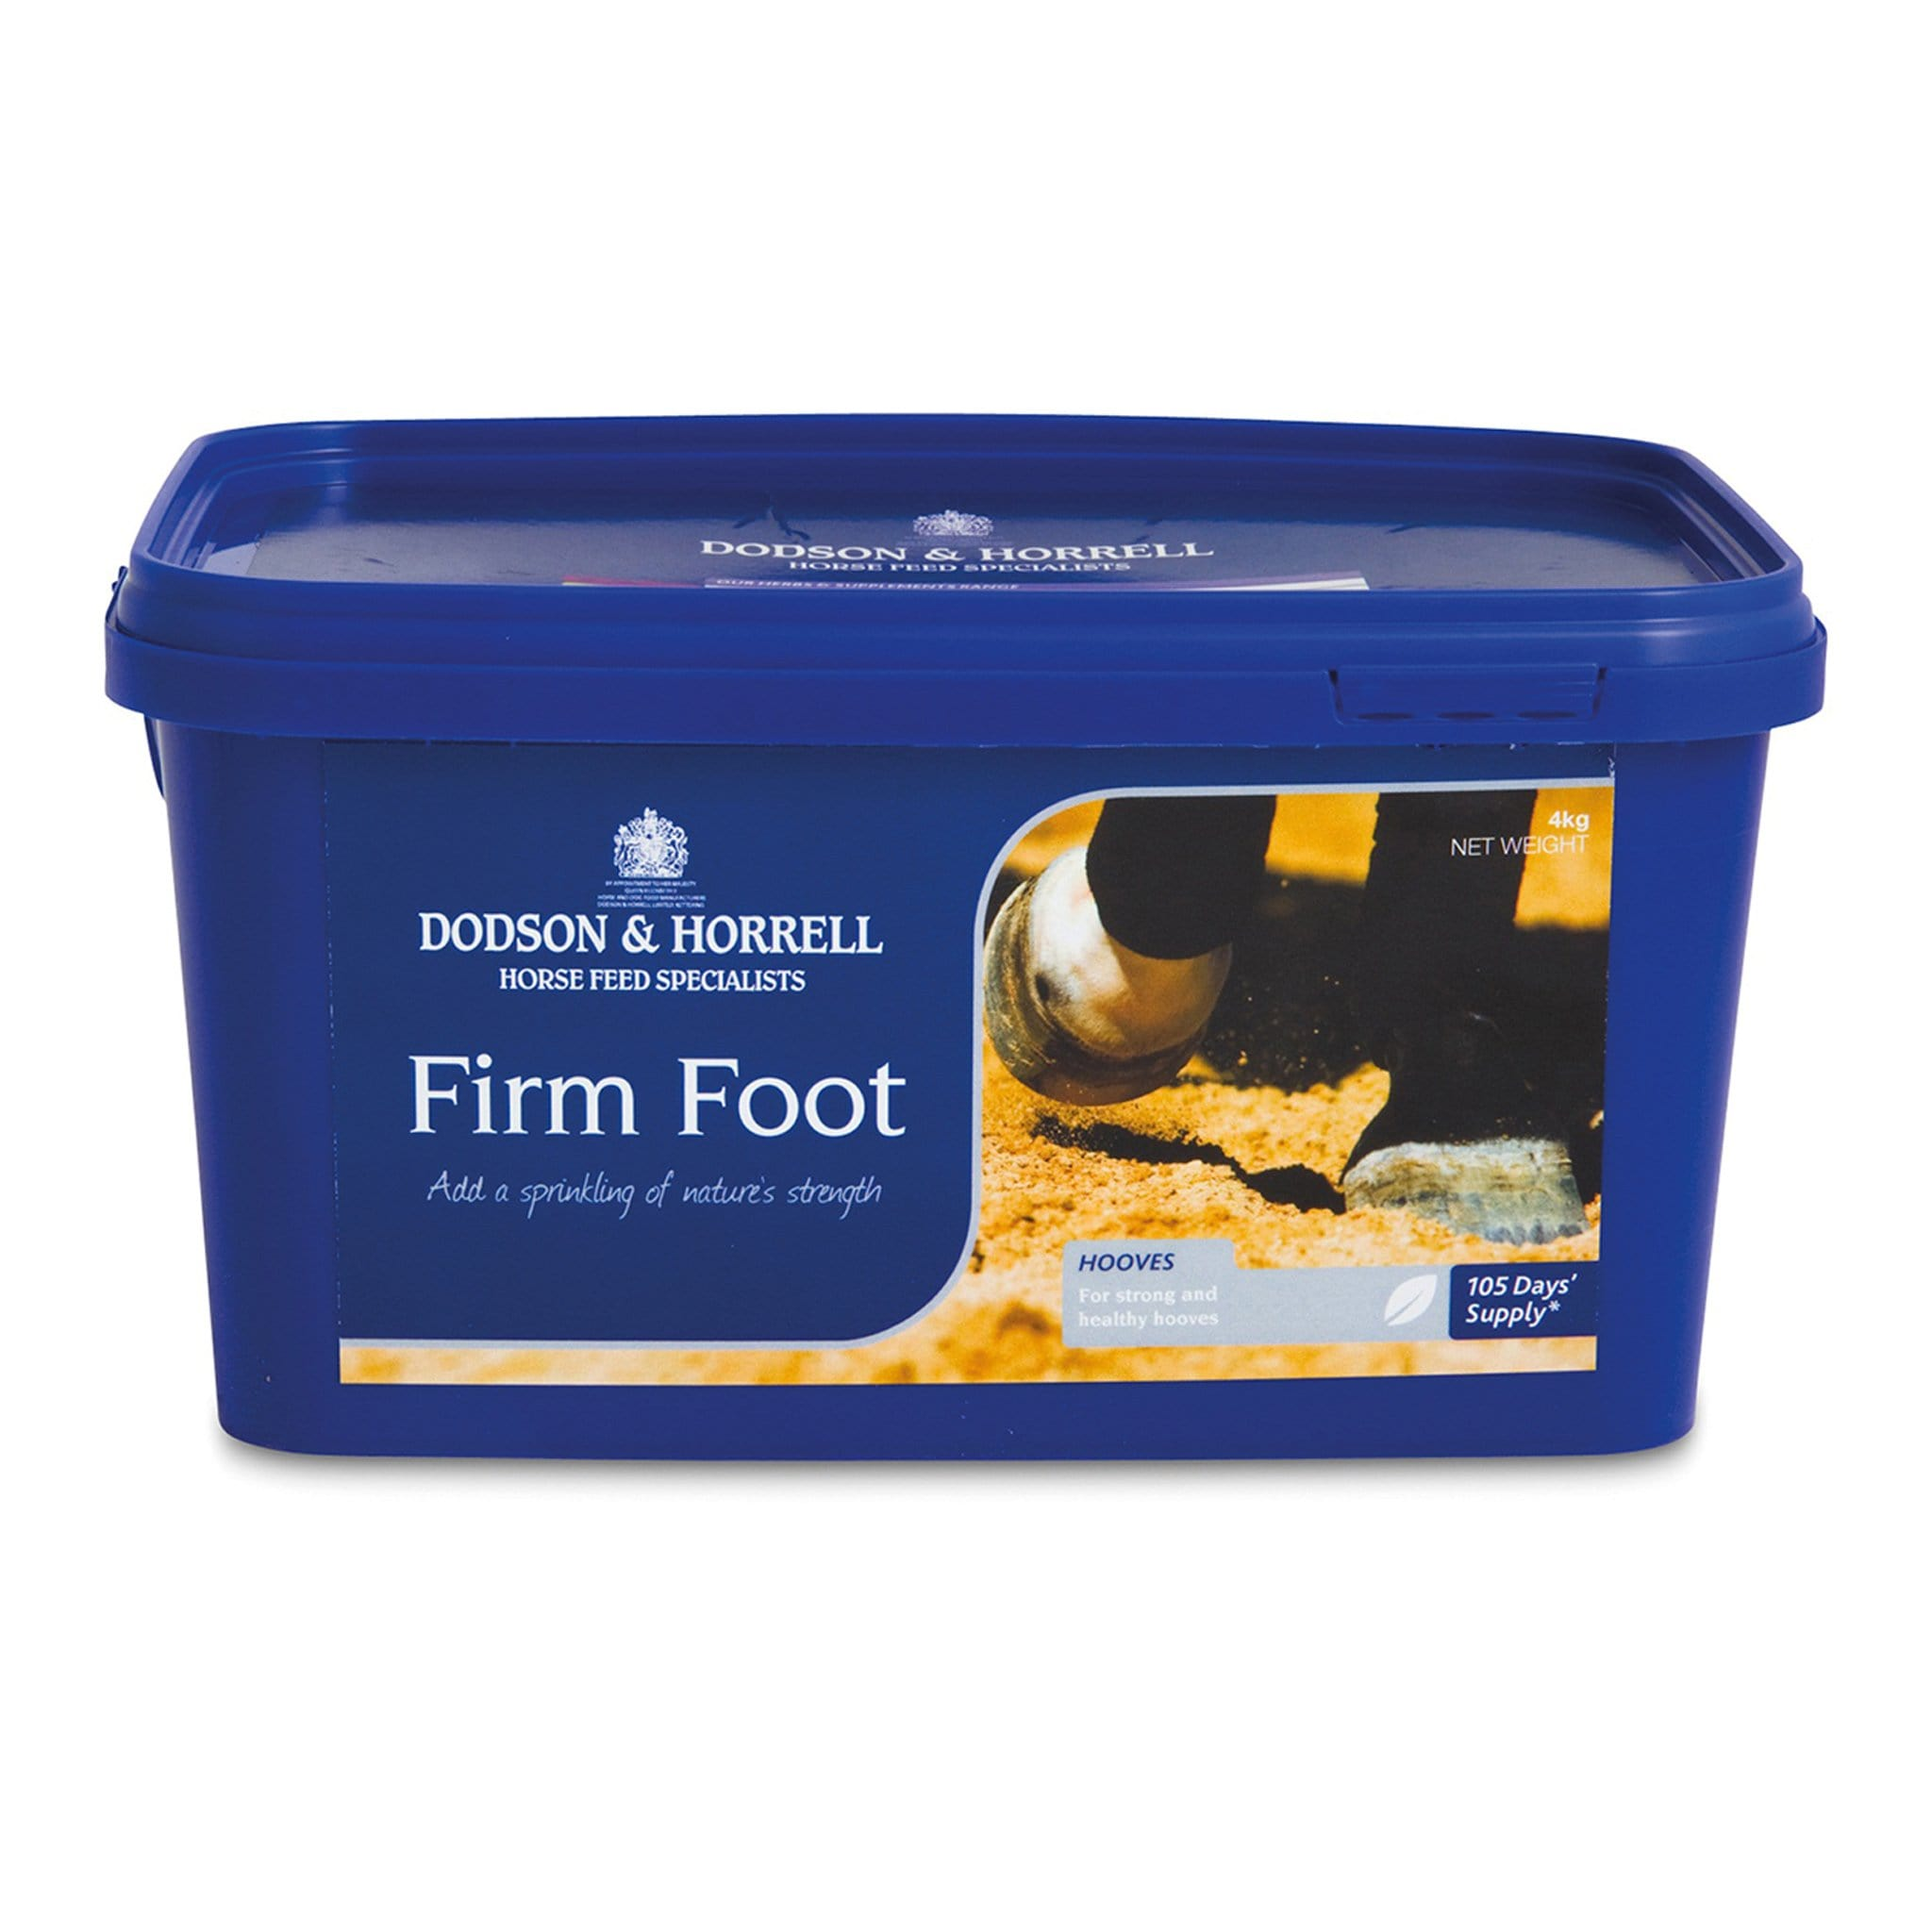 Dodson and Horrell Firm Foot DHL0985 4KG.